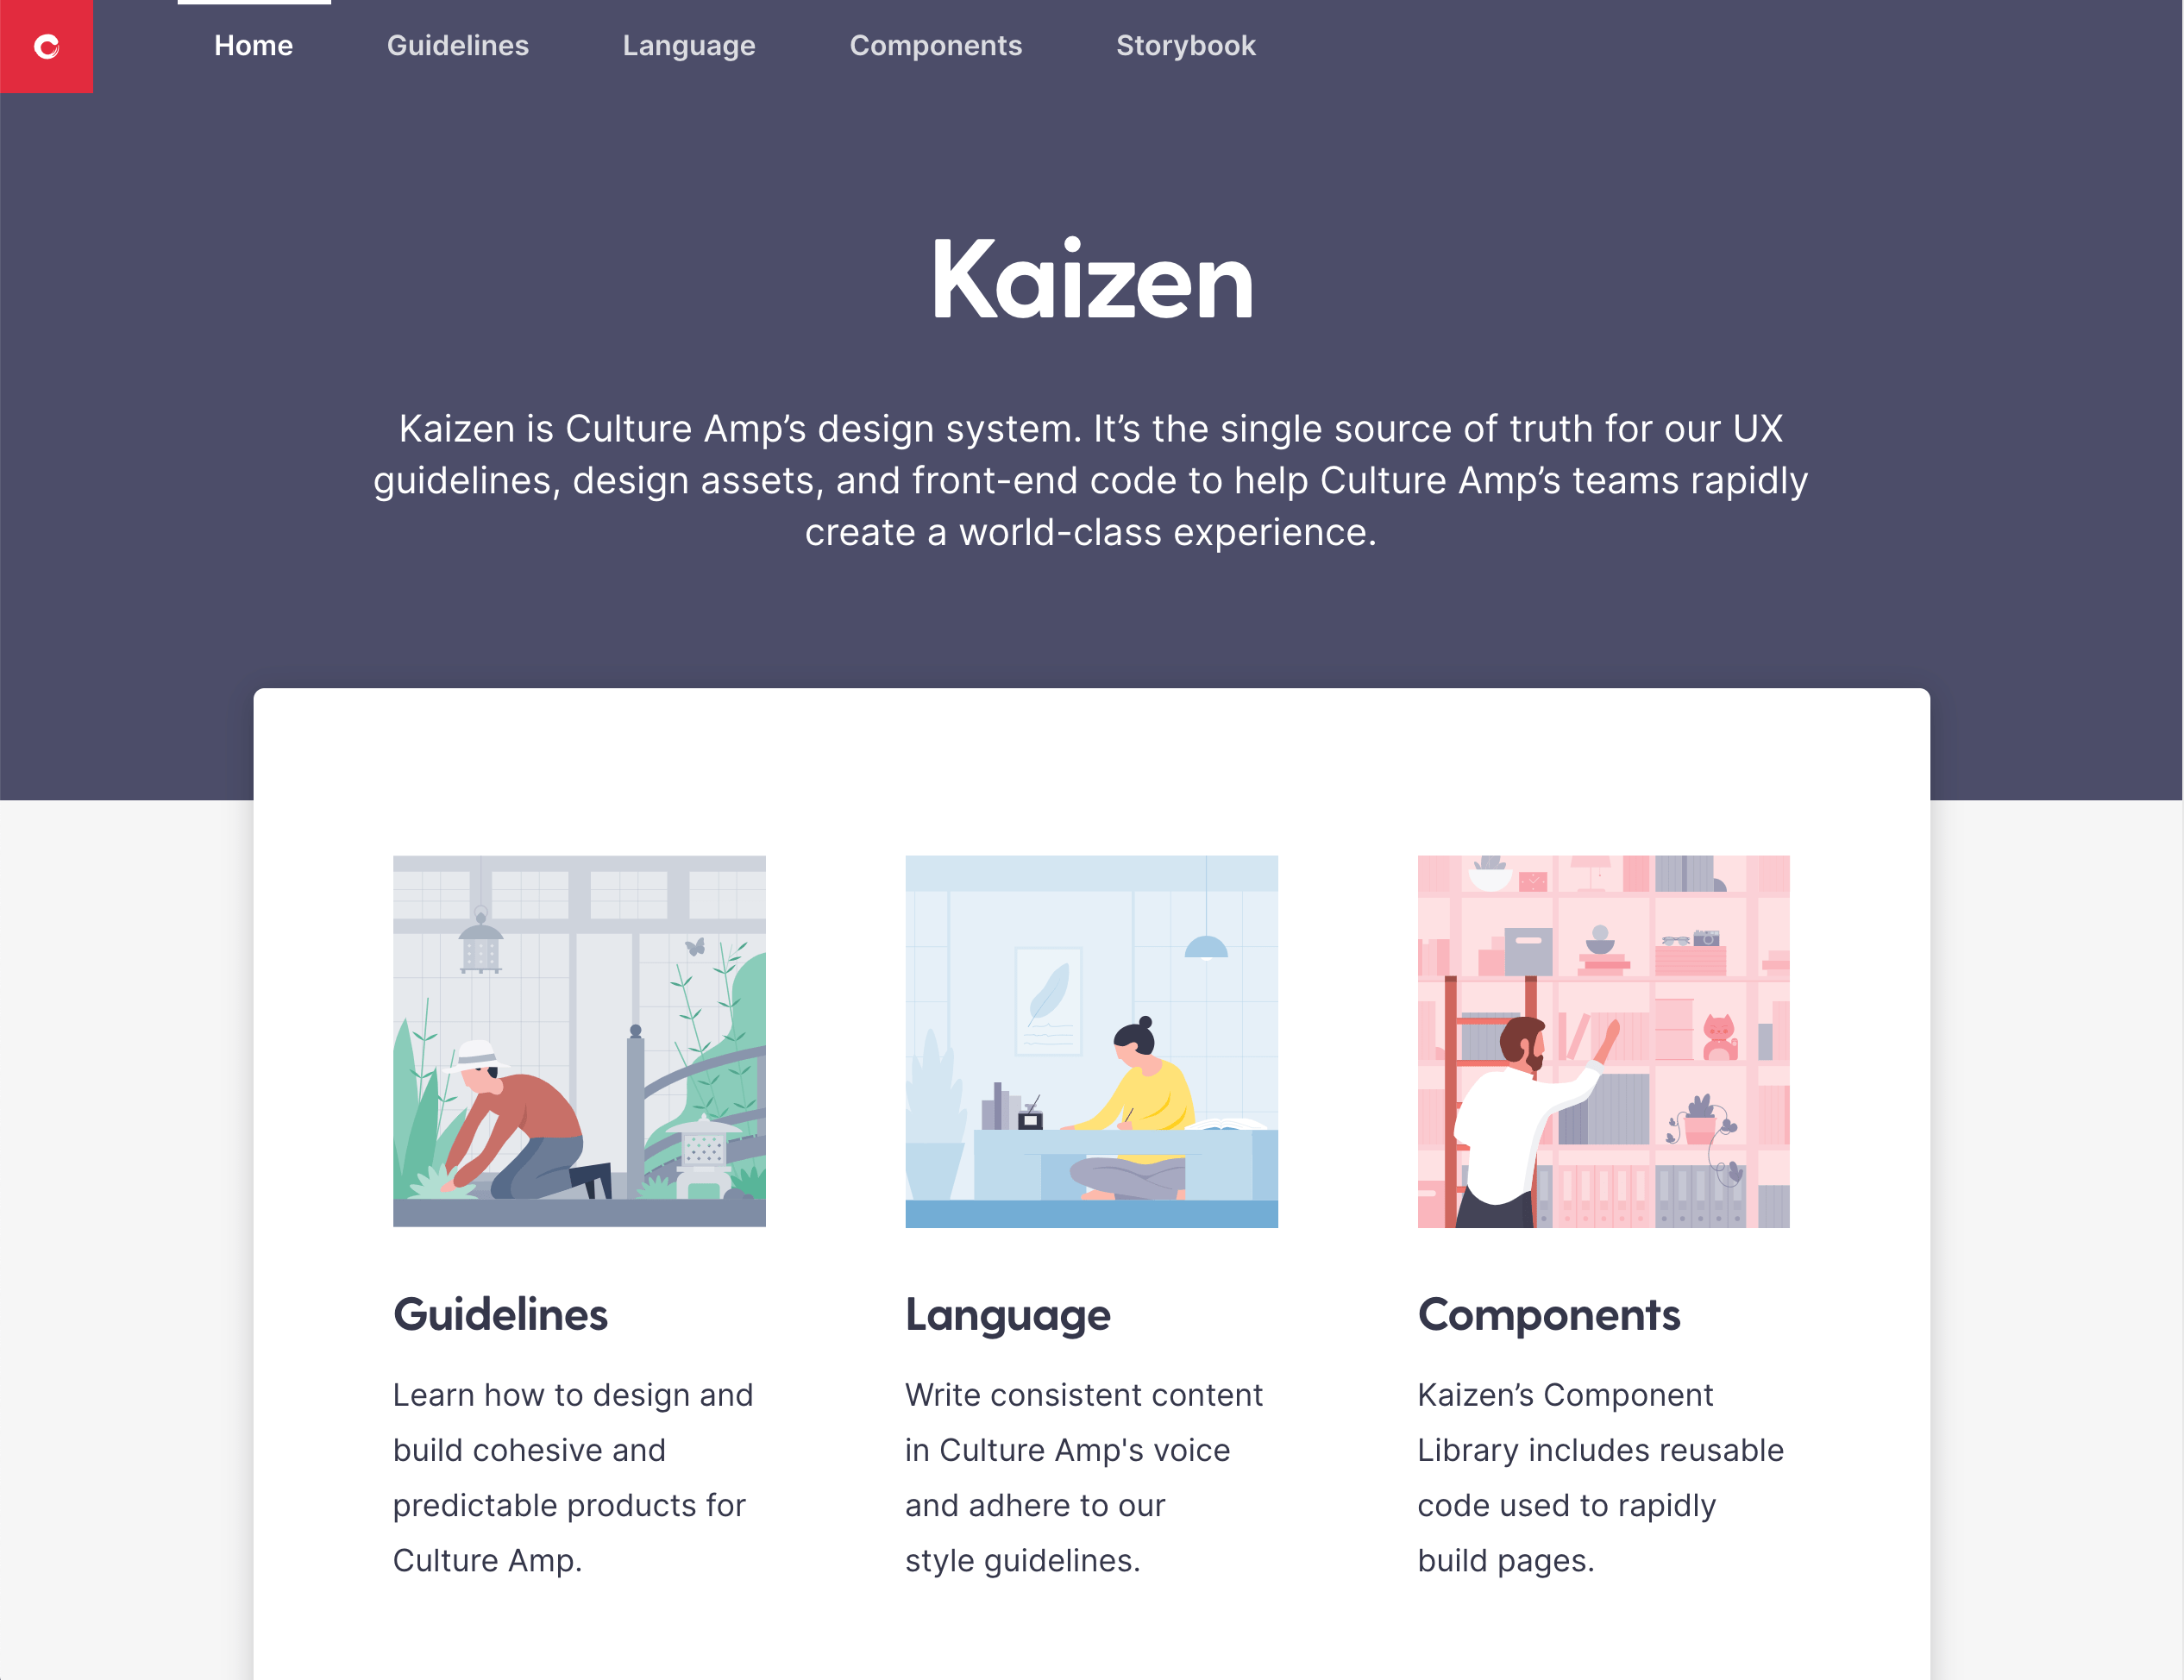 Kaizen design system homepage with a visual overview to Guidelines, Language, and Components, as well as link to Storybook.